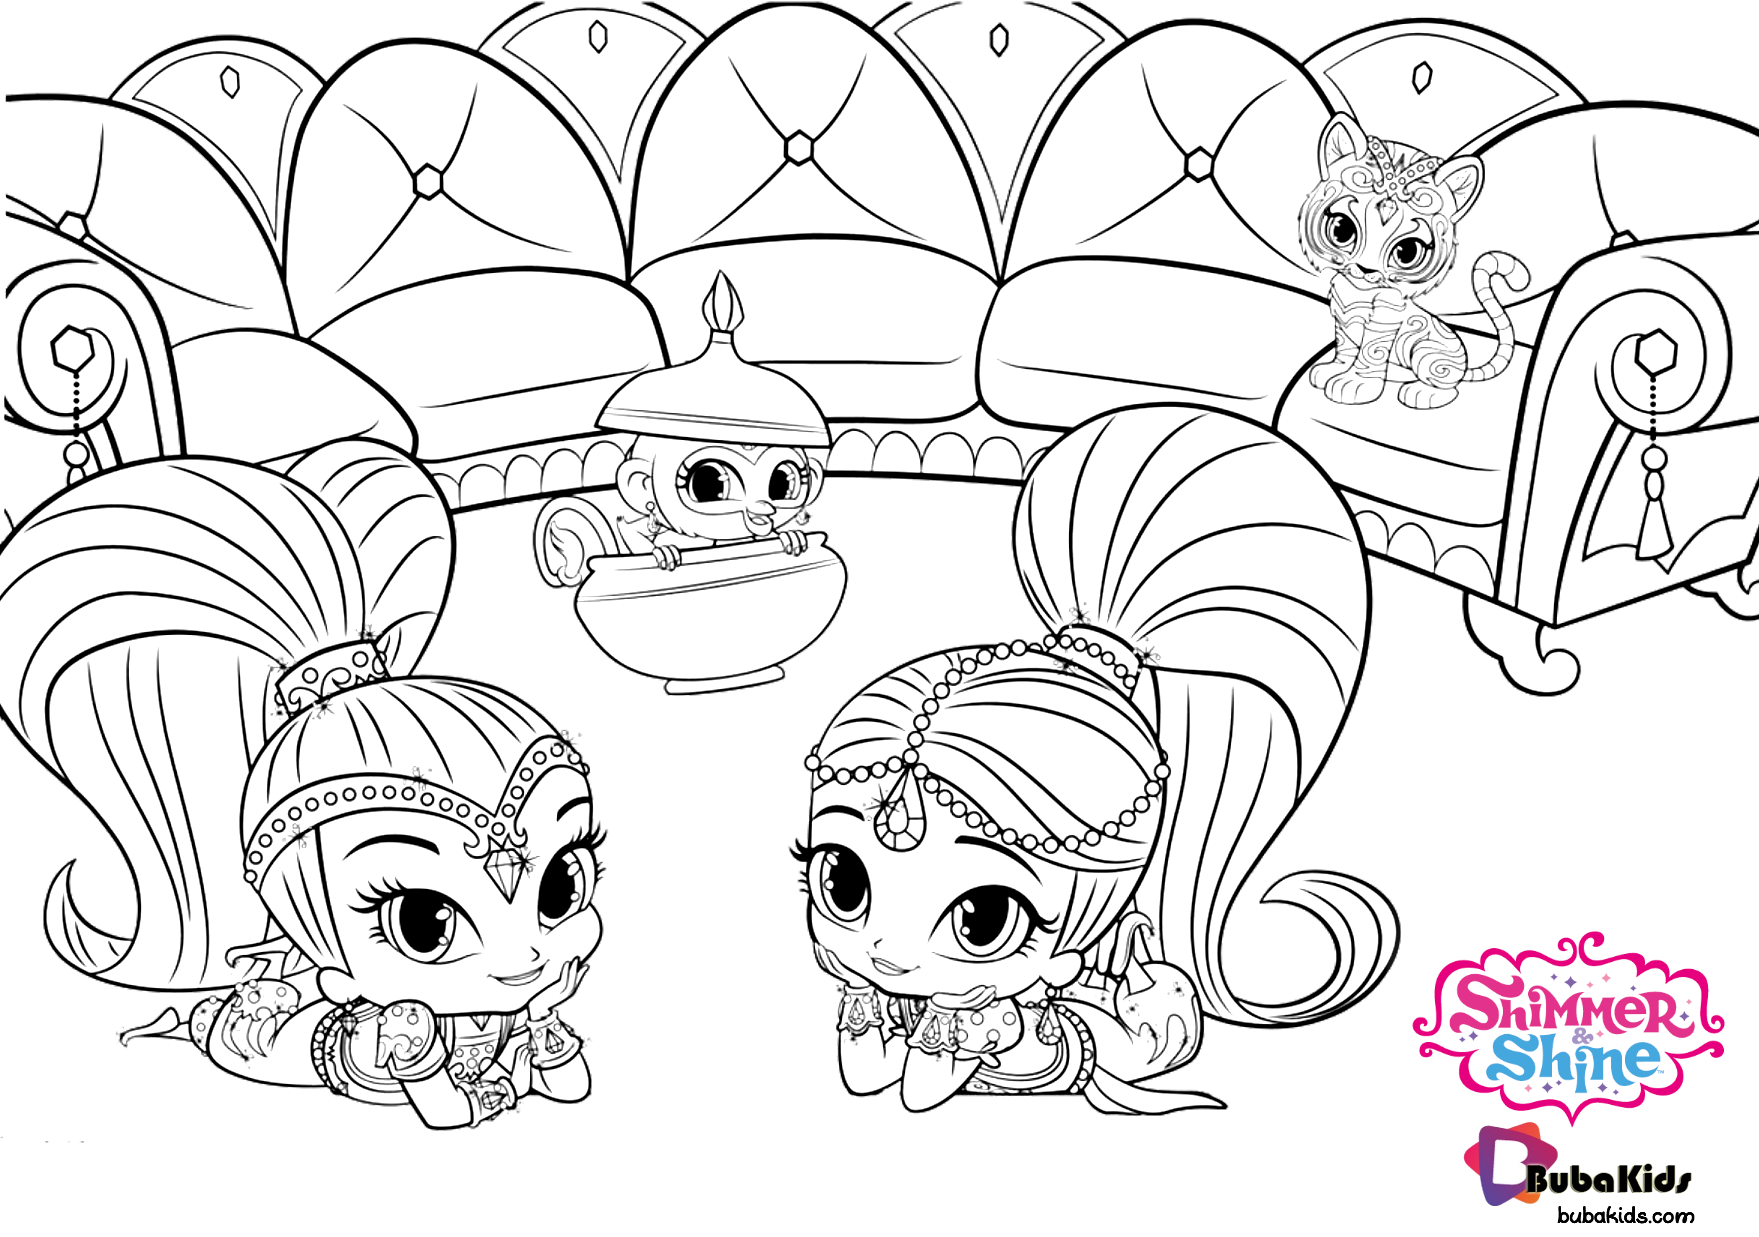 Nick Jr Shimmer And Shine Printable And Free Coloring Page Collection Of Cartoon Coloring Pages F Mermaid Coloring Pages Cartoon Coloring Pages Coloring Pages